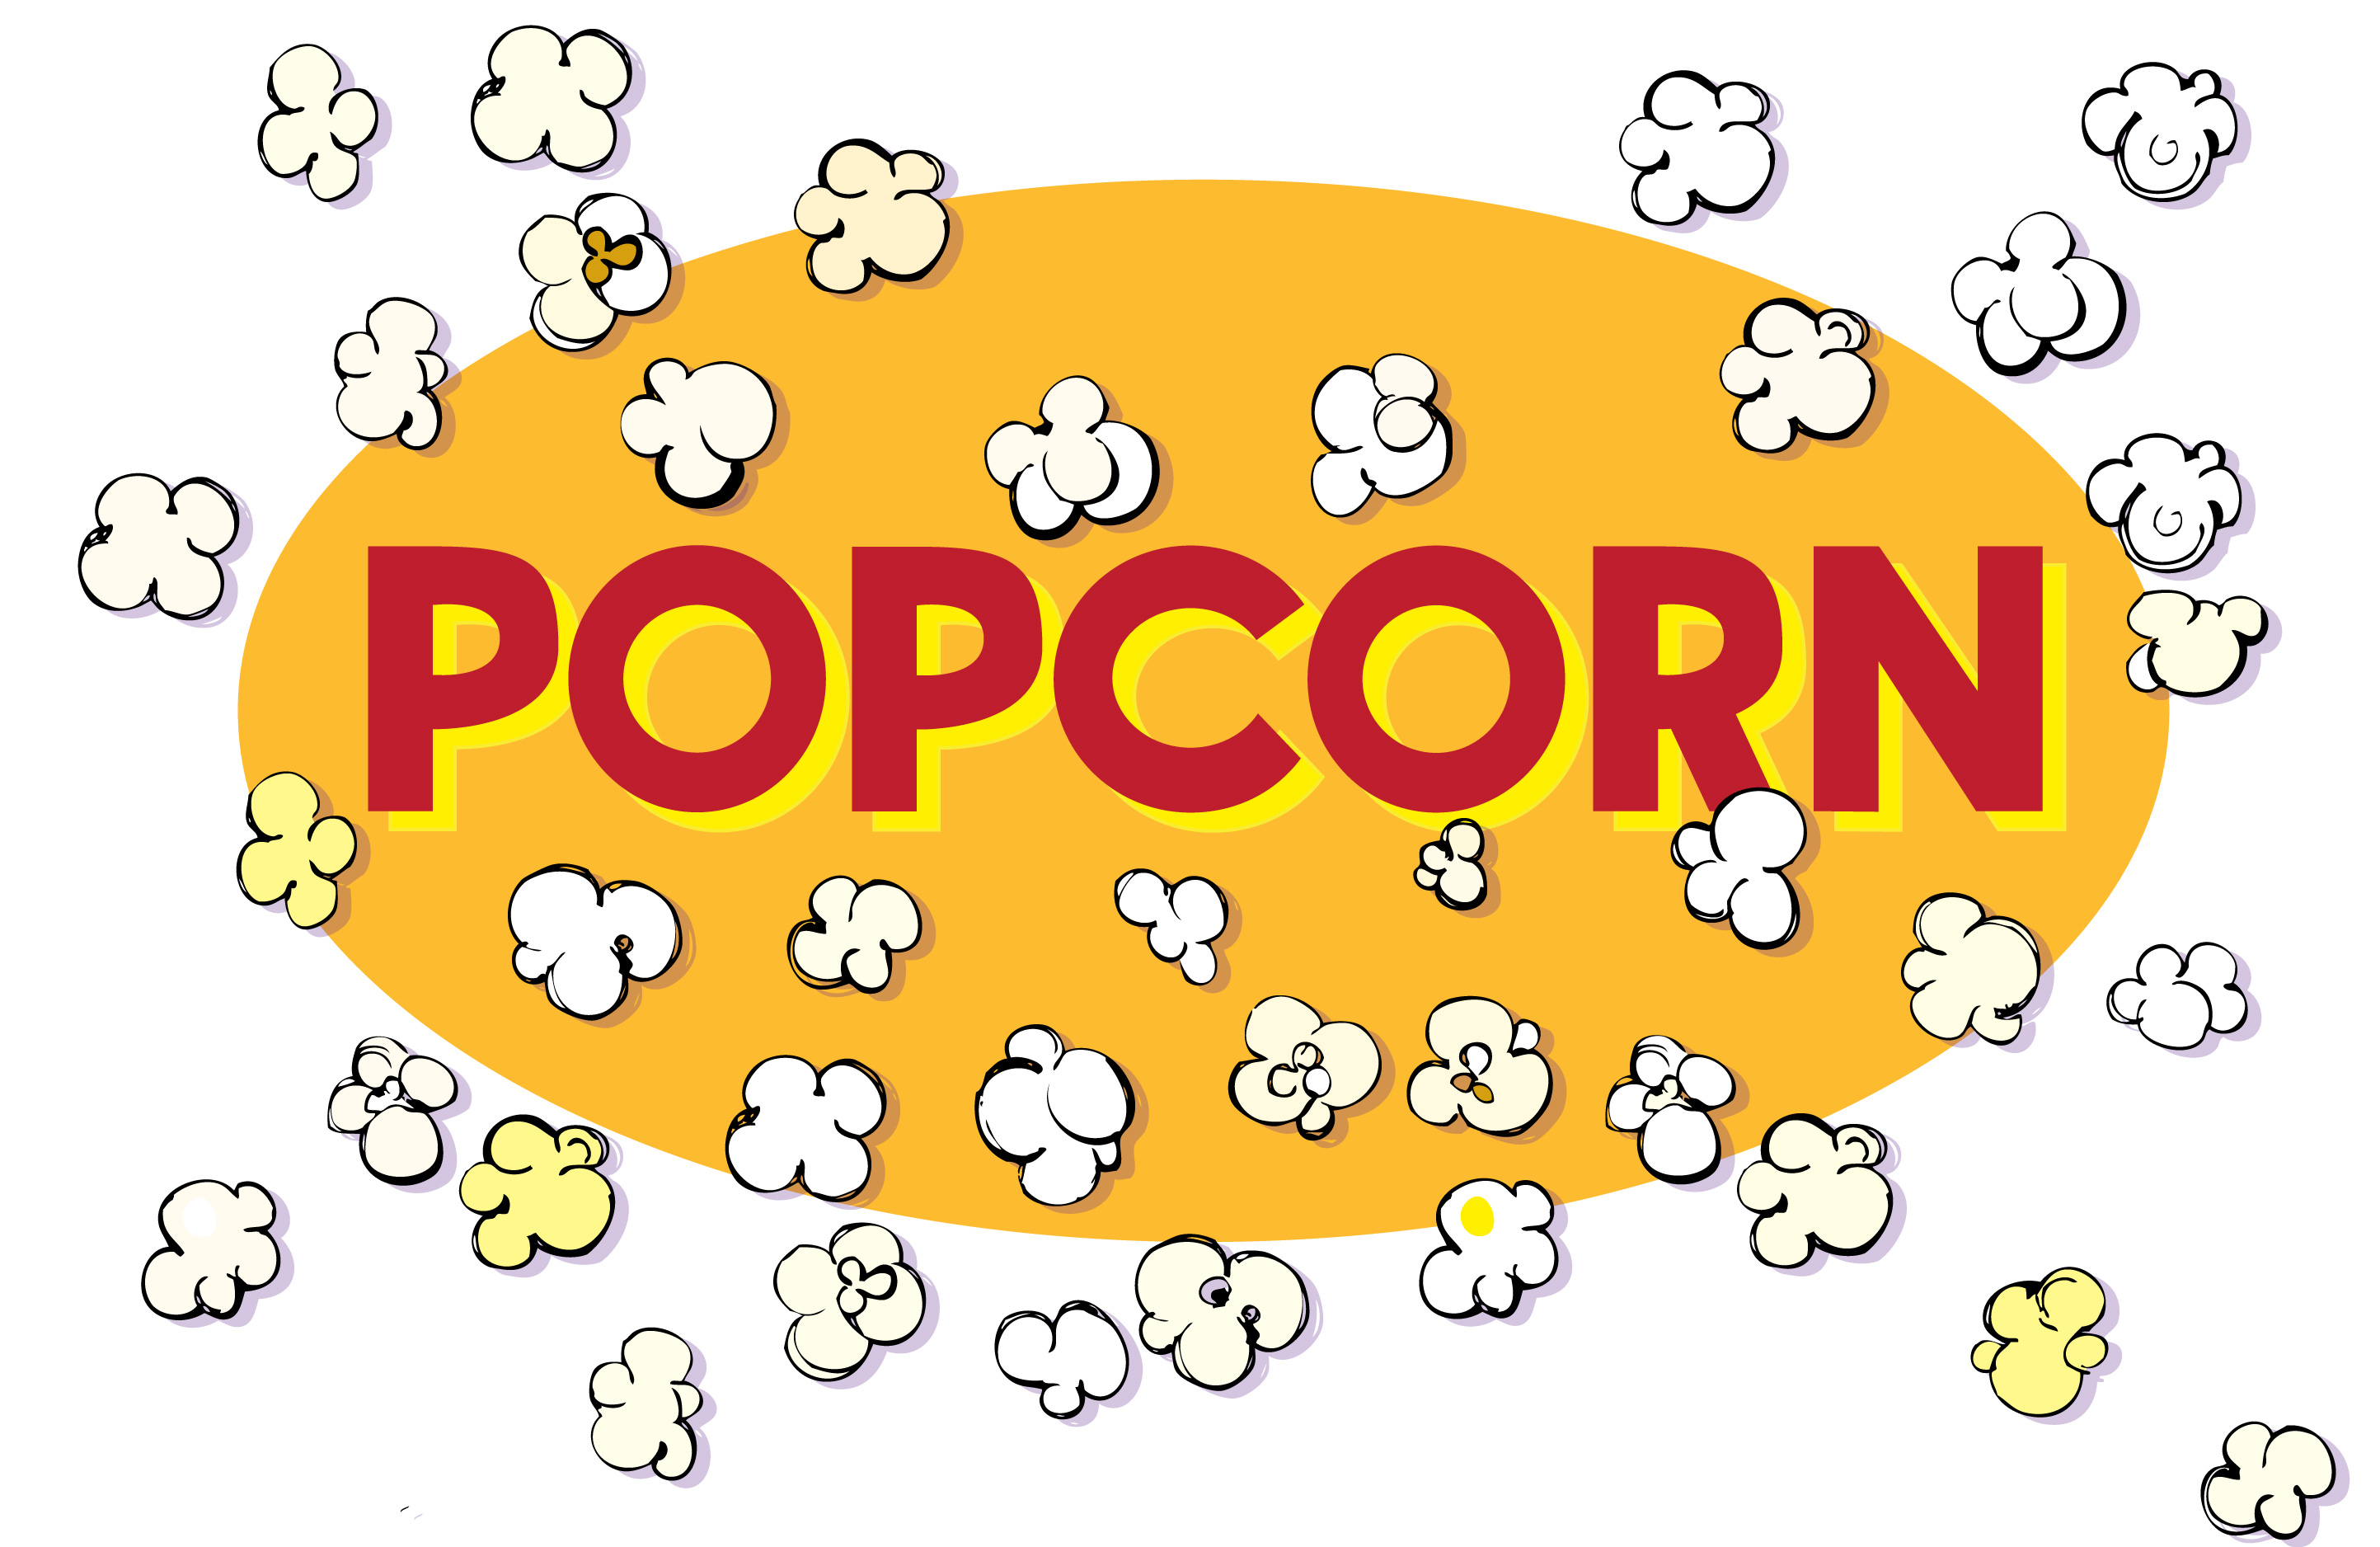 2887x1876 Popcorn Clipart Logo Free Collection Download And Share Popcorn